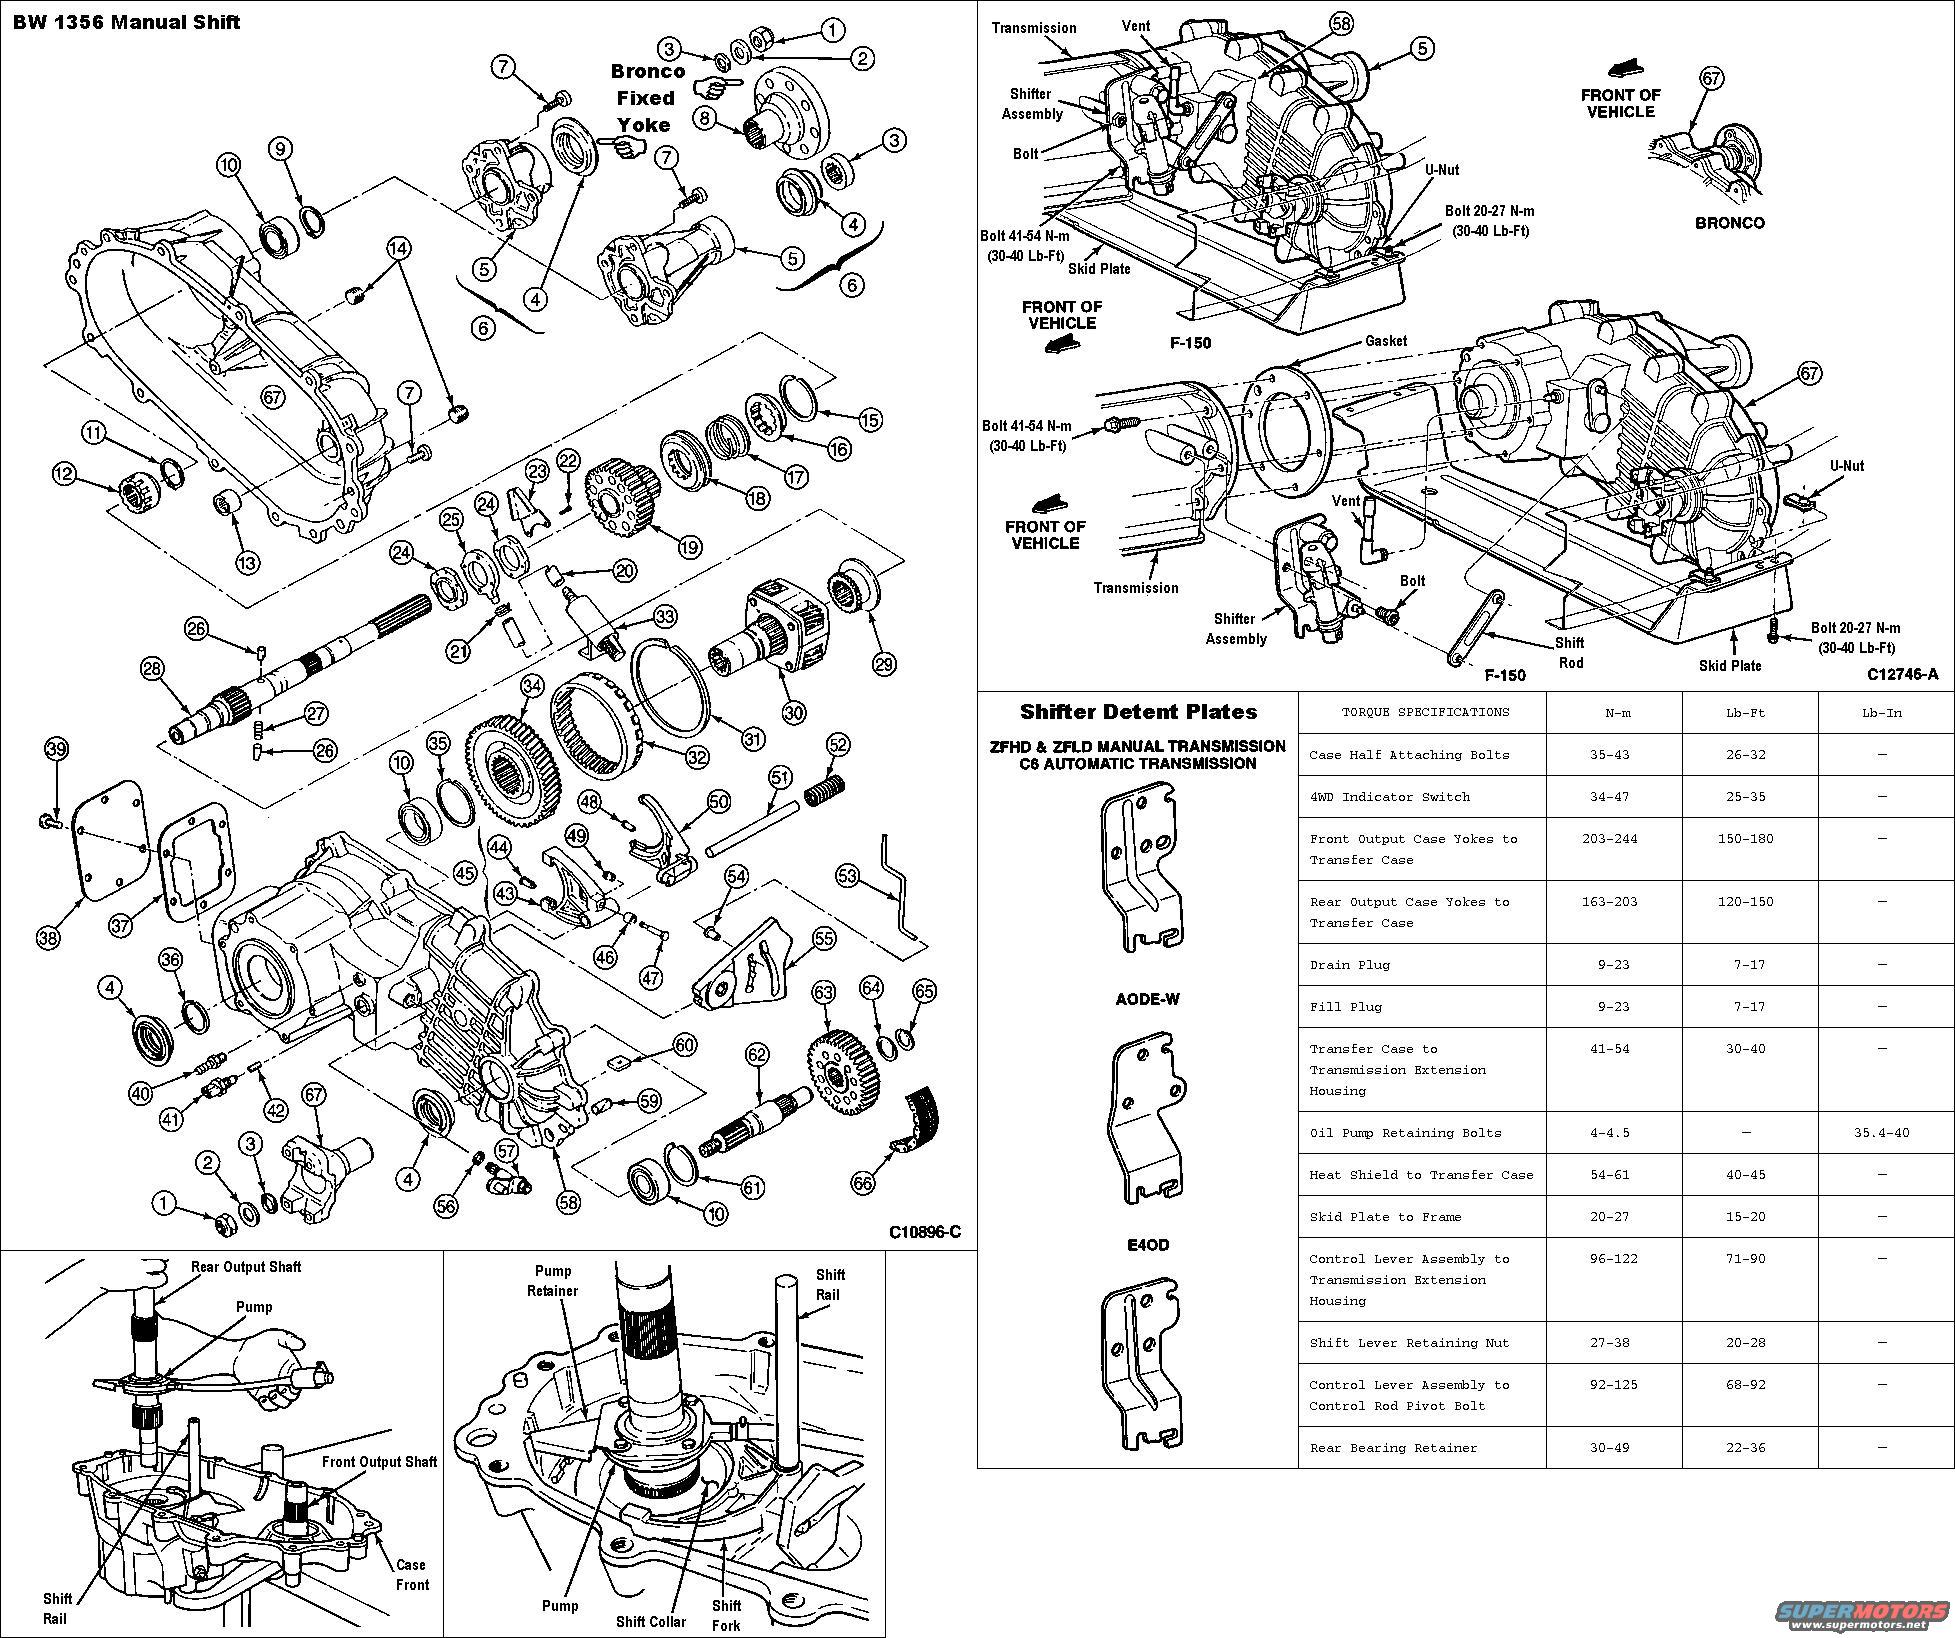 2000 Ford F150 Stereo Wiring Diagram - Ford F Radio Wiring Harness Solidfonts - 2000 Ford F150 Stereo Wiring Diagram